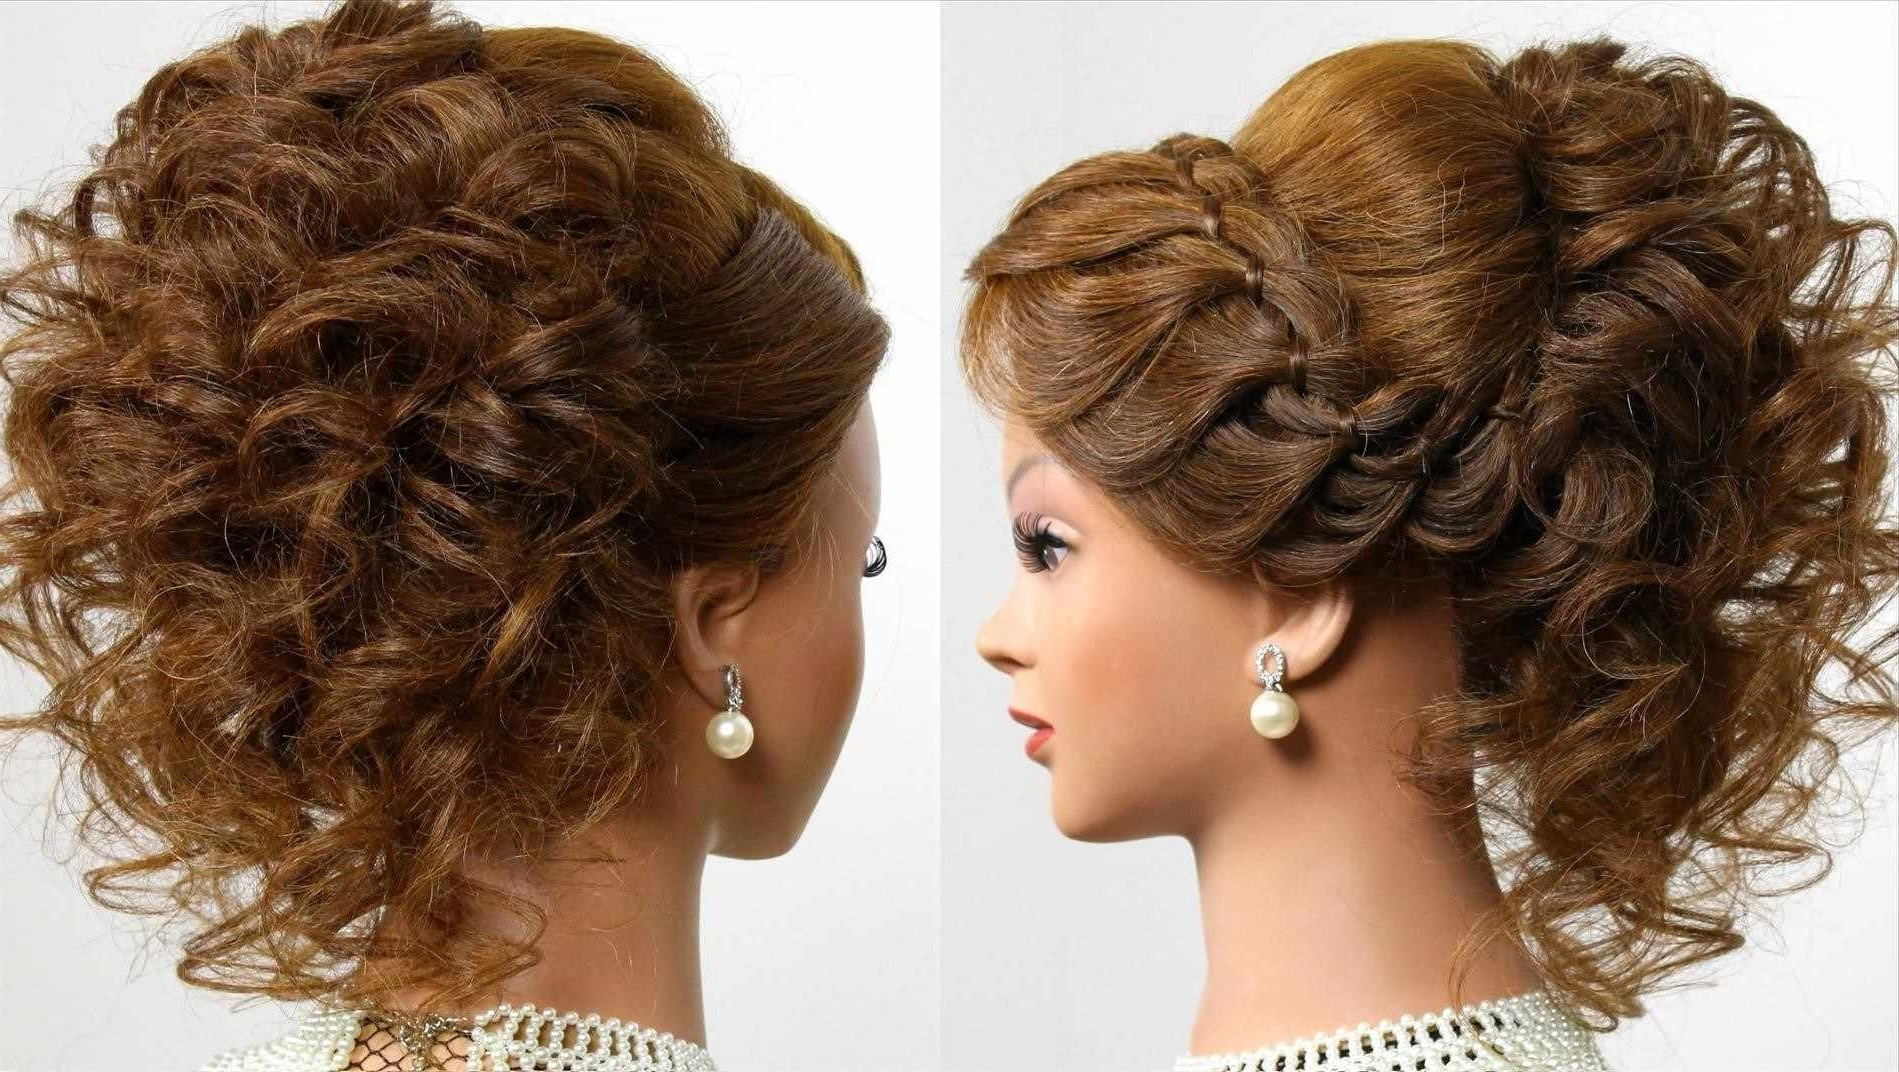 Up Hairstyle For Short Hair Youtube Down Wedding Bride Or Mother Of In Half Updos For Mother Of The Bride (View 14 of 15)